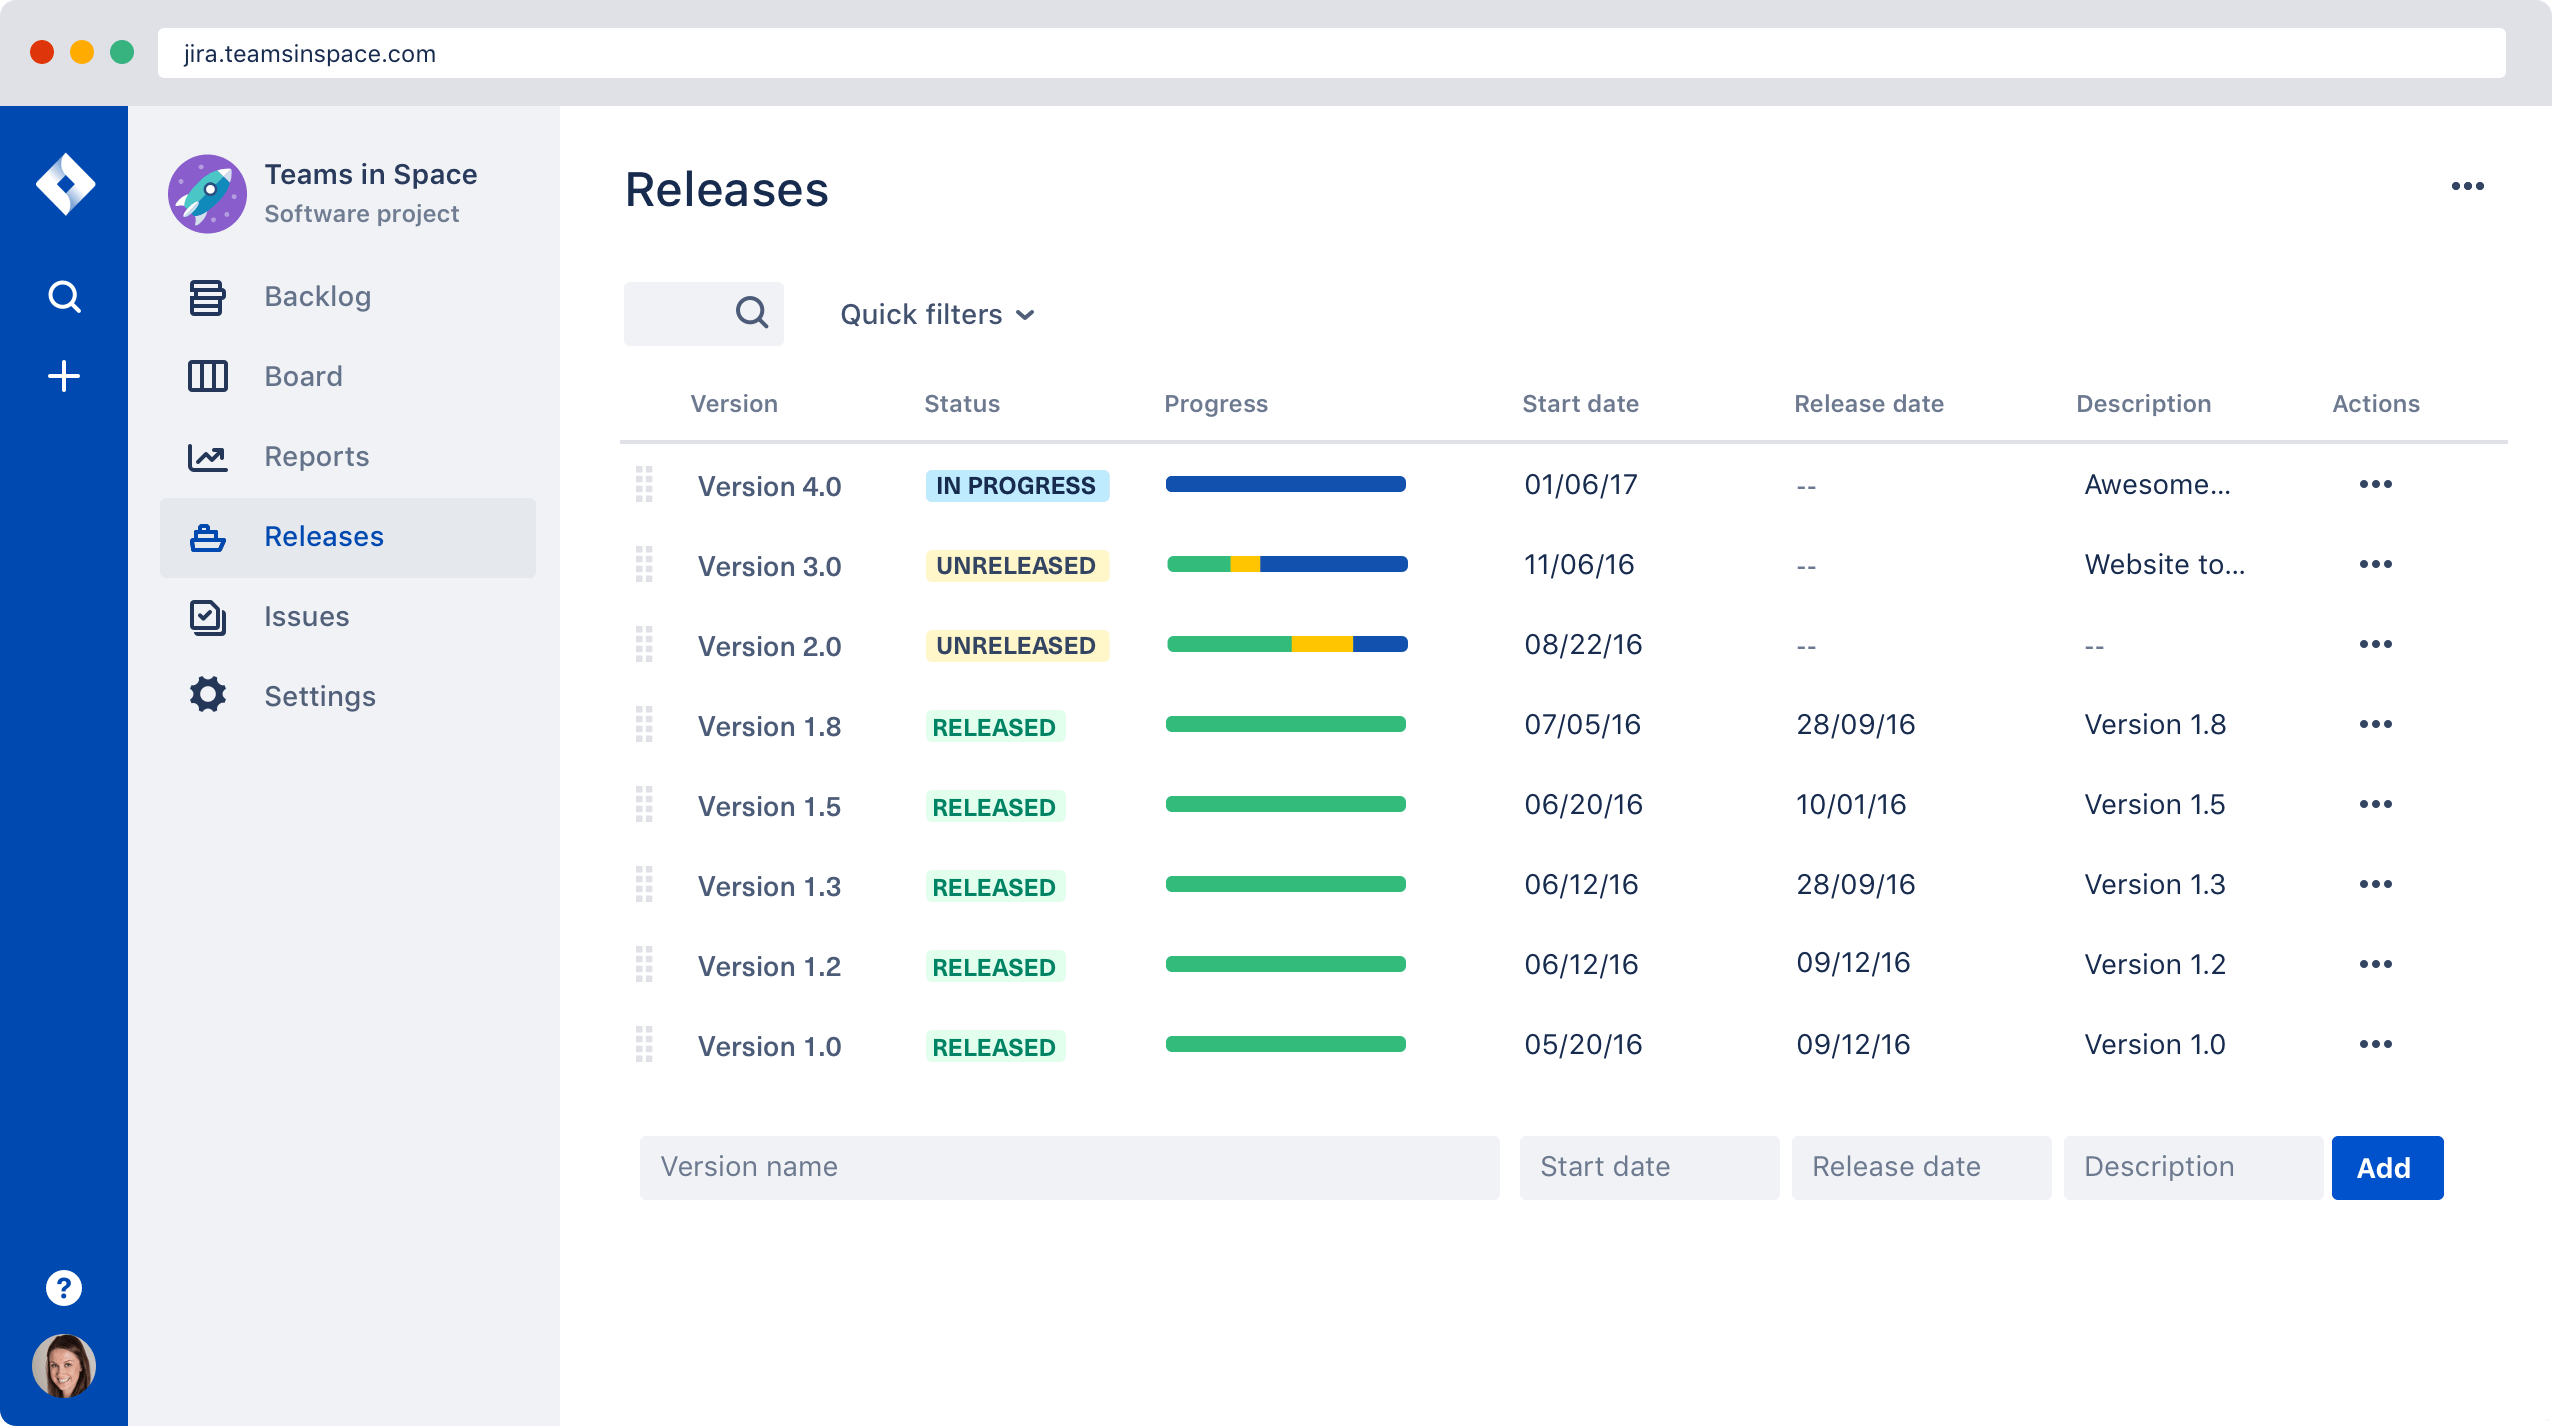 jira issue project tracking software atlassian rh atlassian com